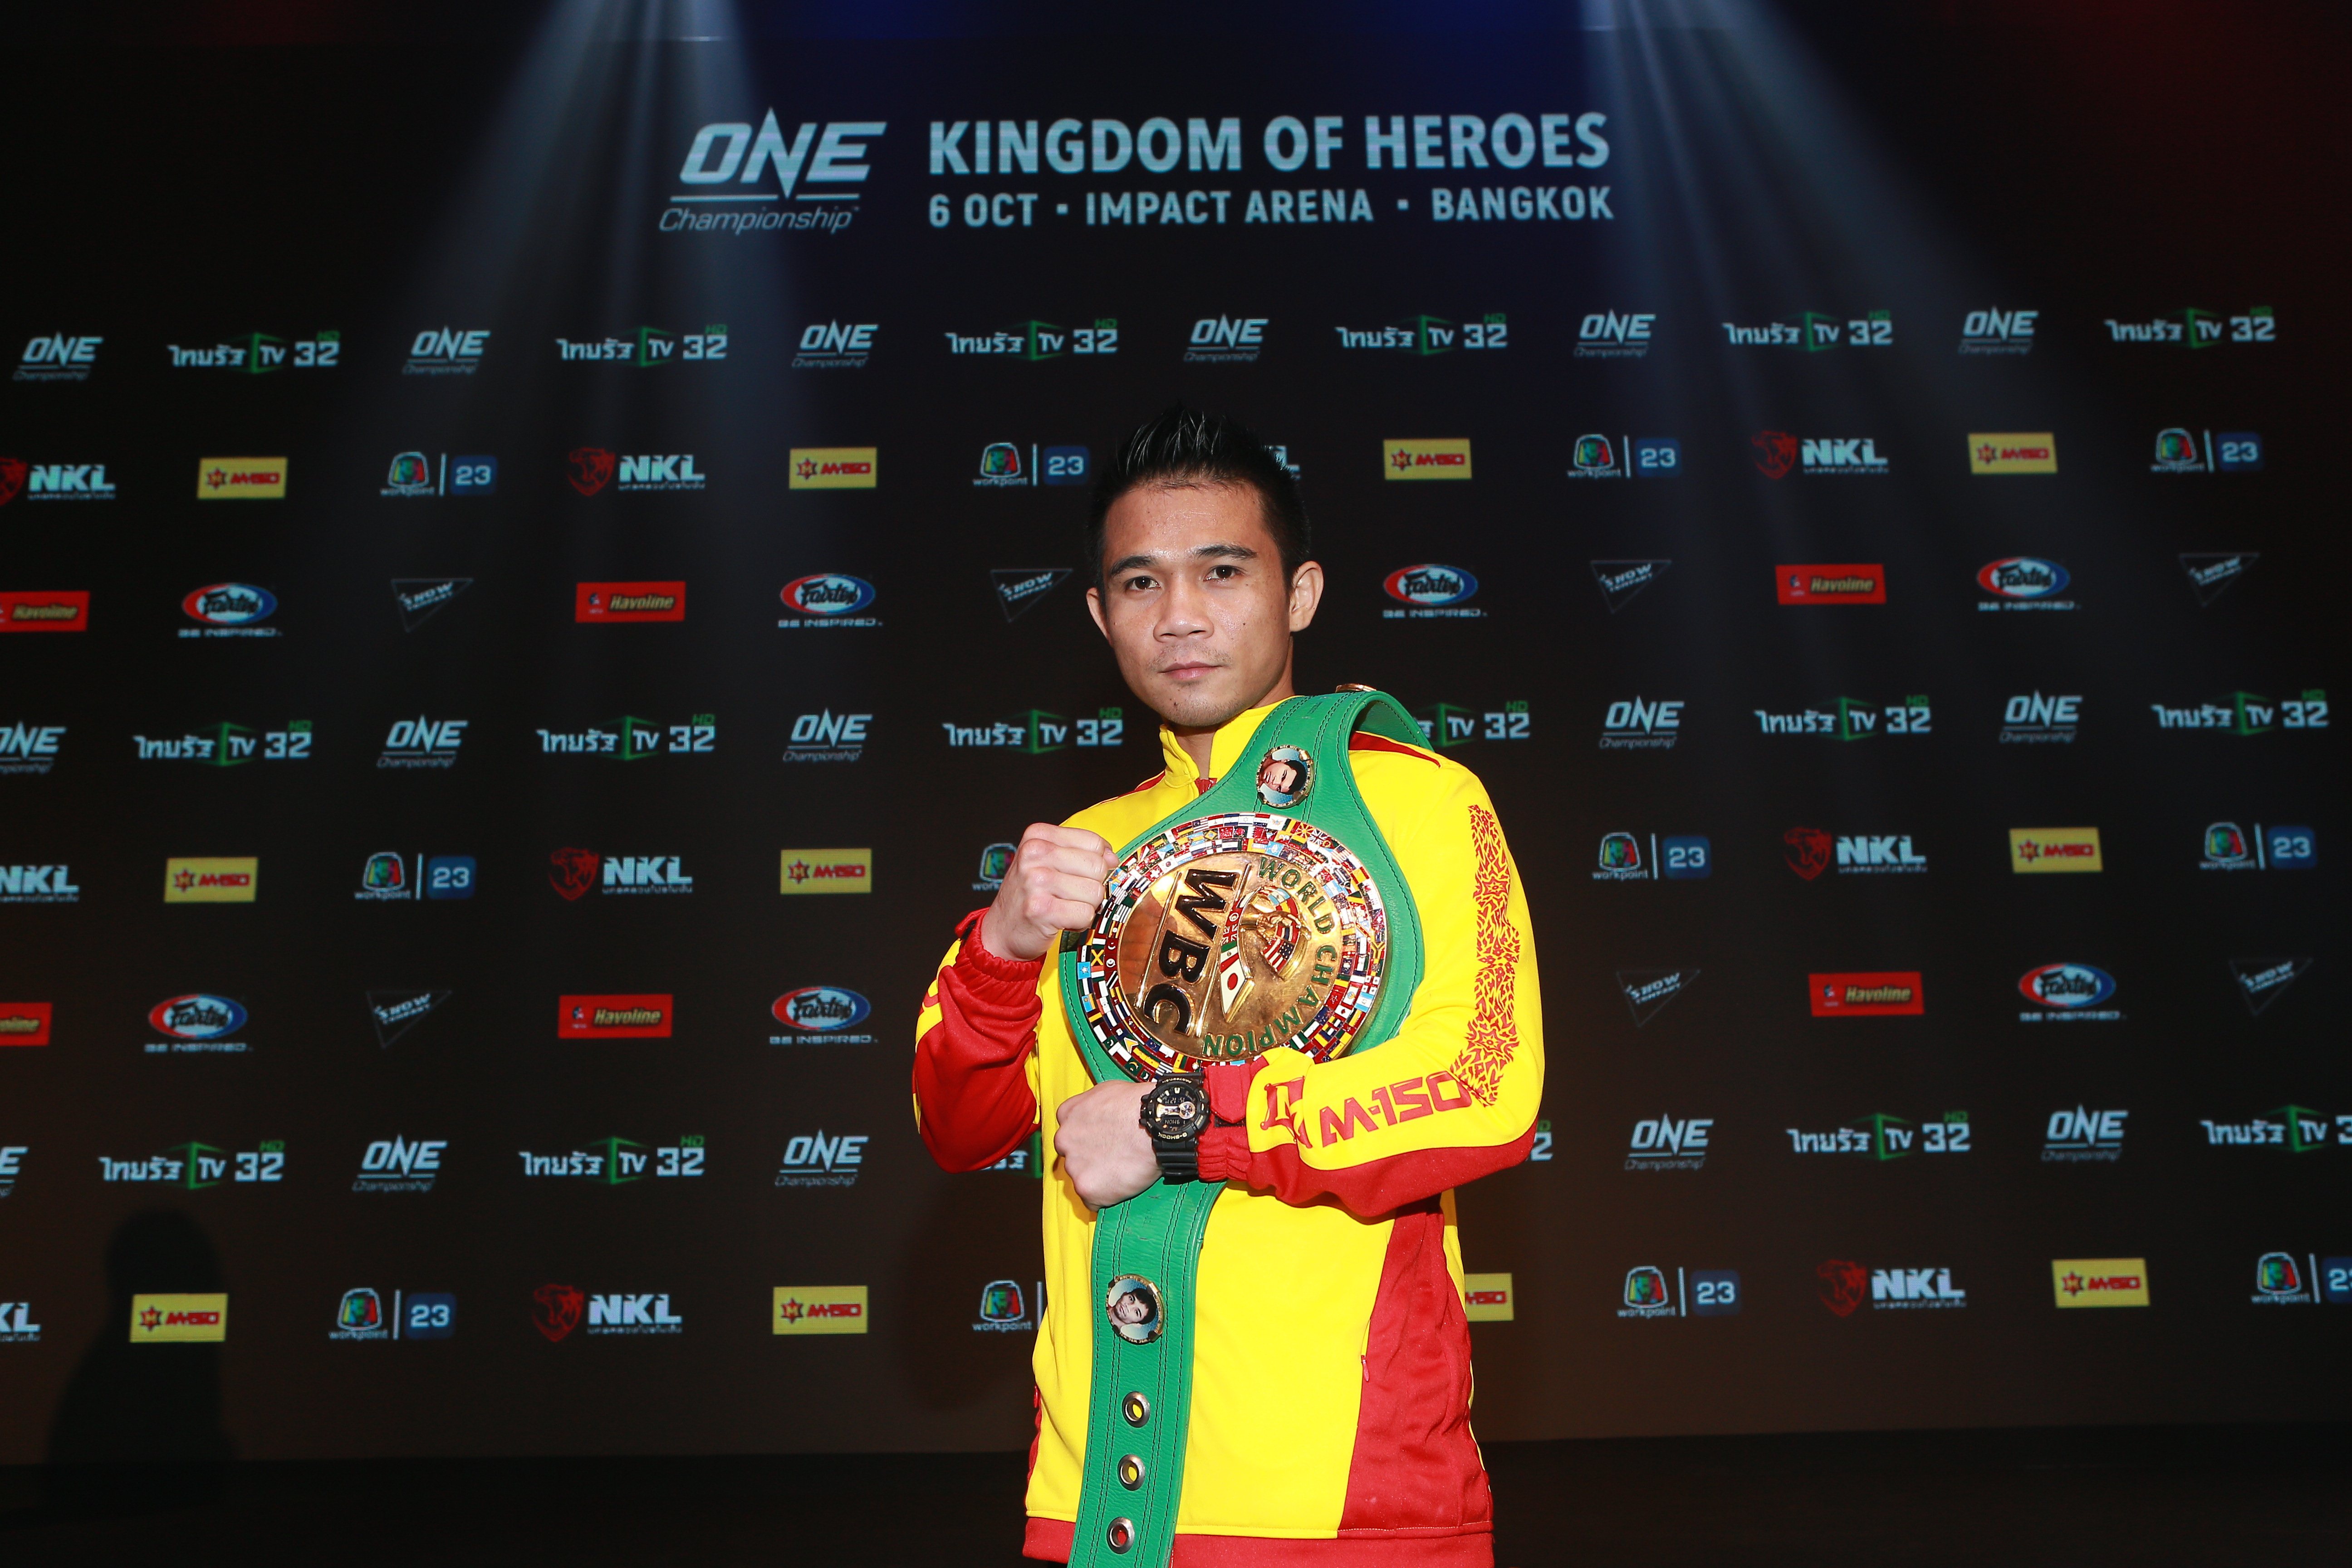 ONE Championship breathes new life into Asian boxing - ONE Championship